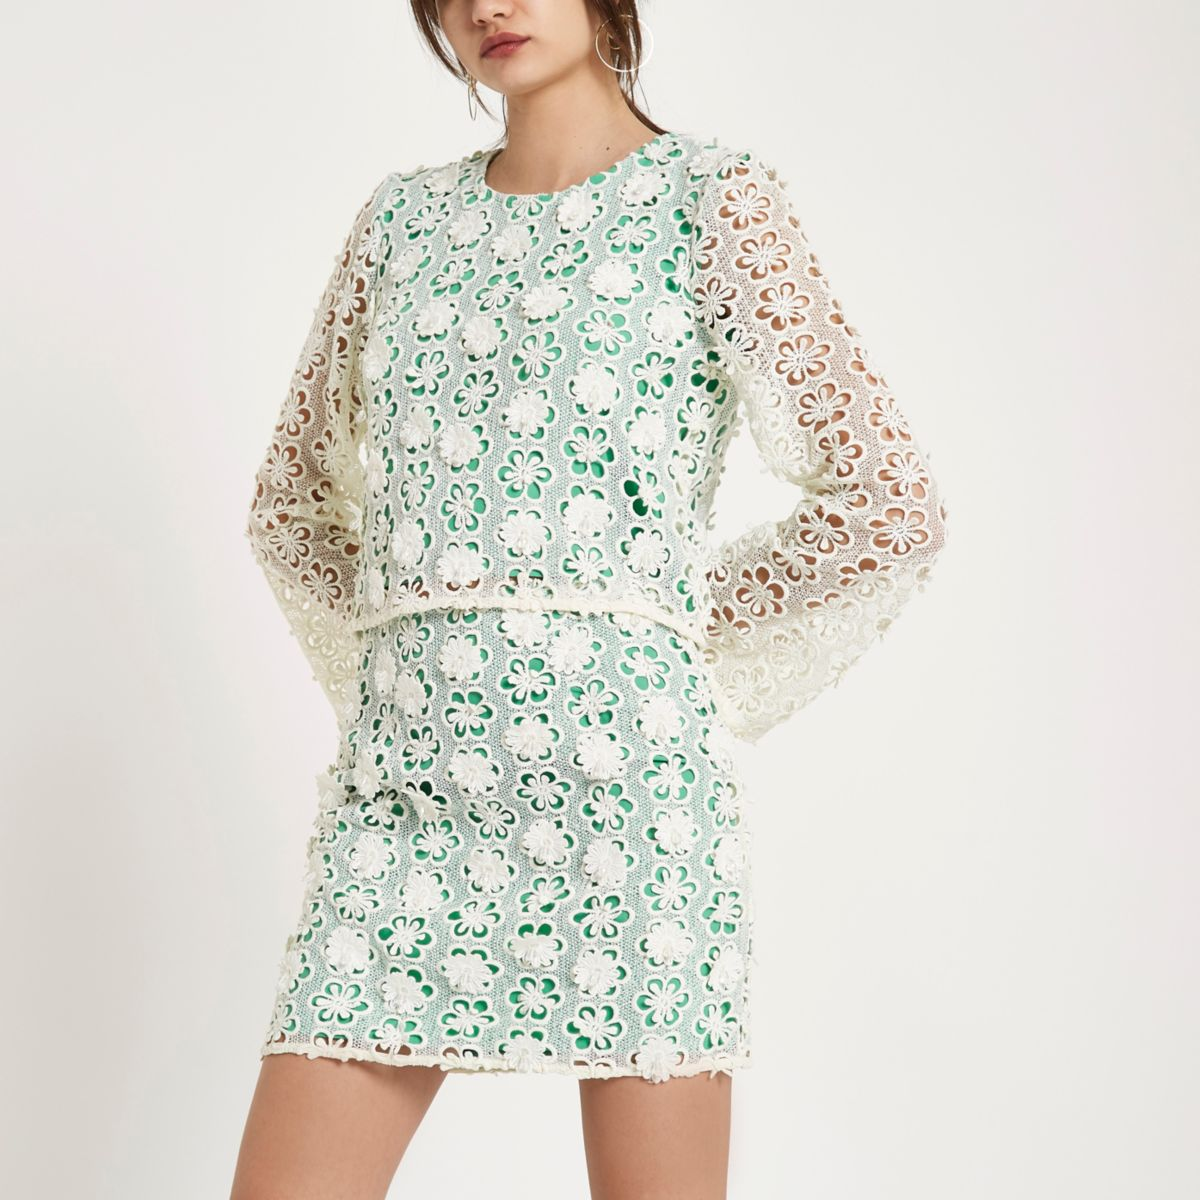 Green floral lace embellished top